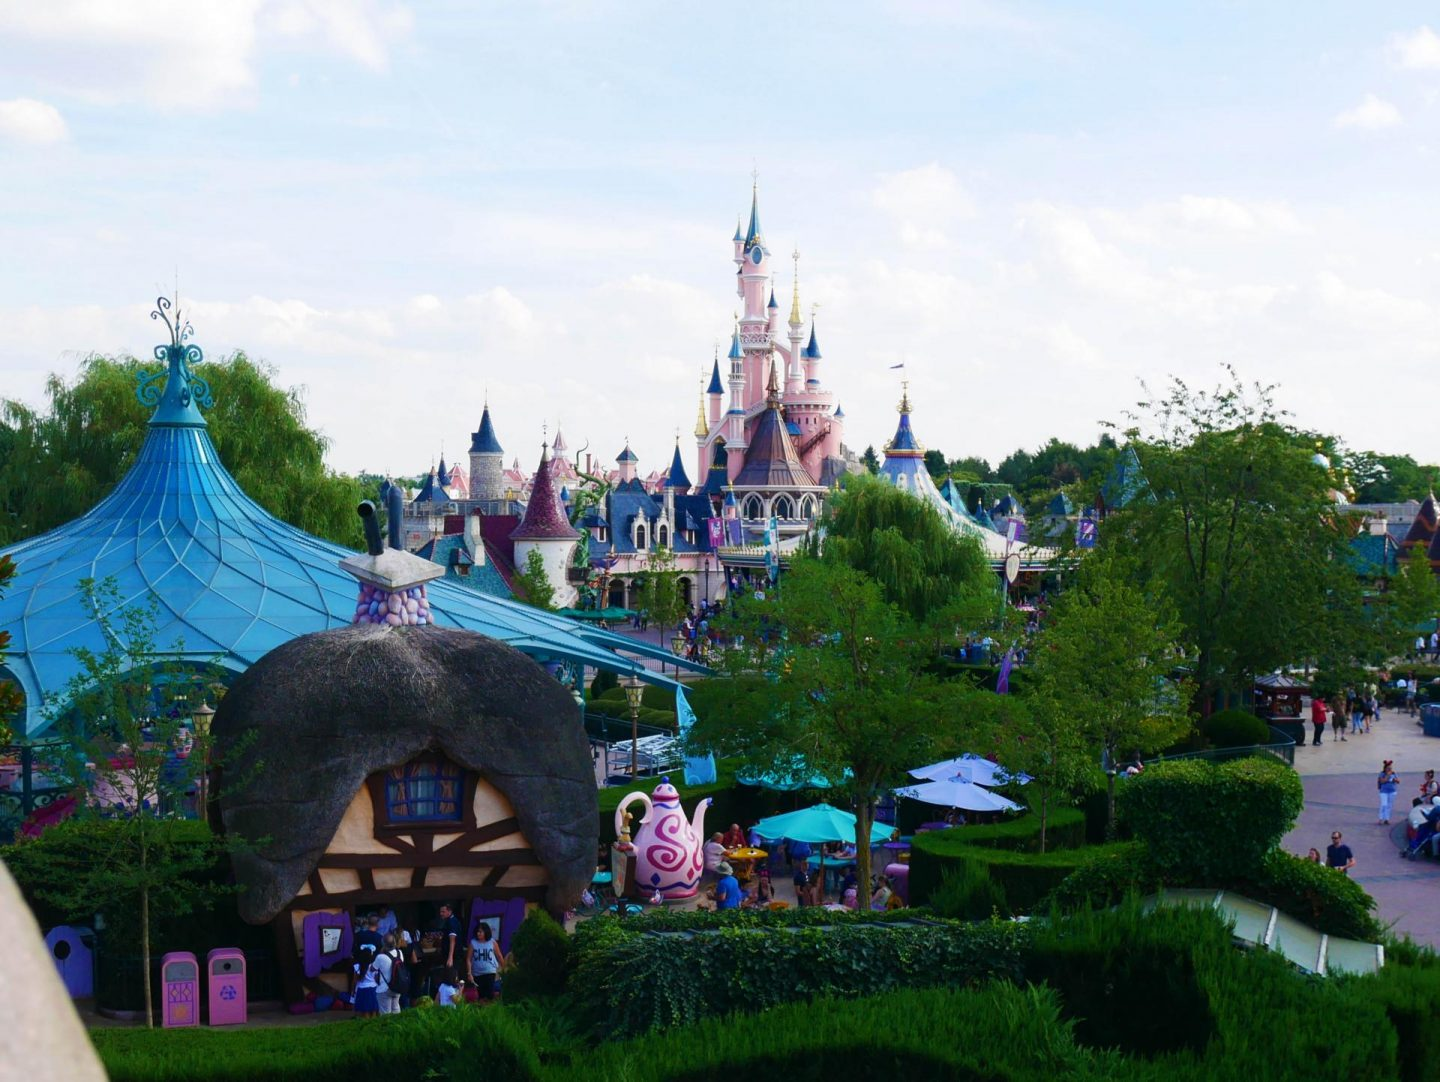 disneyland-paris-my-22nd-birthday-trip-rachel-nicole-uk-travel-disney-blogger-19